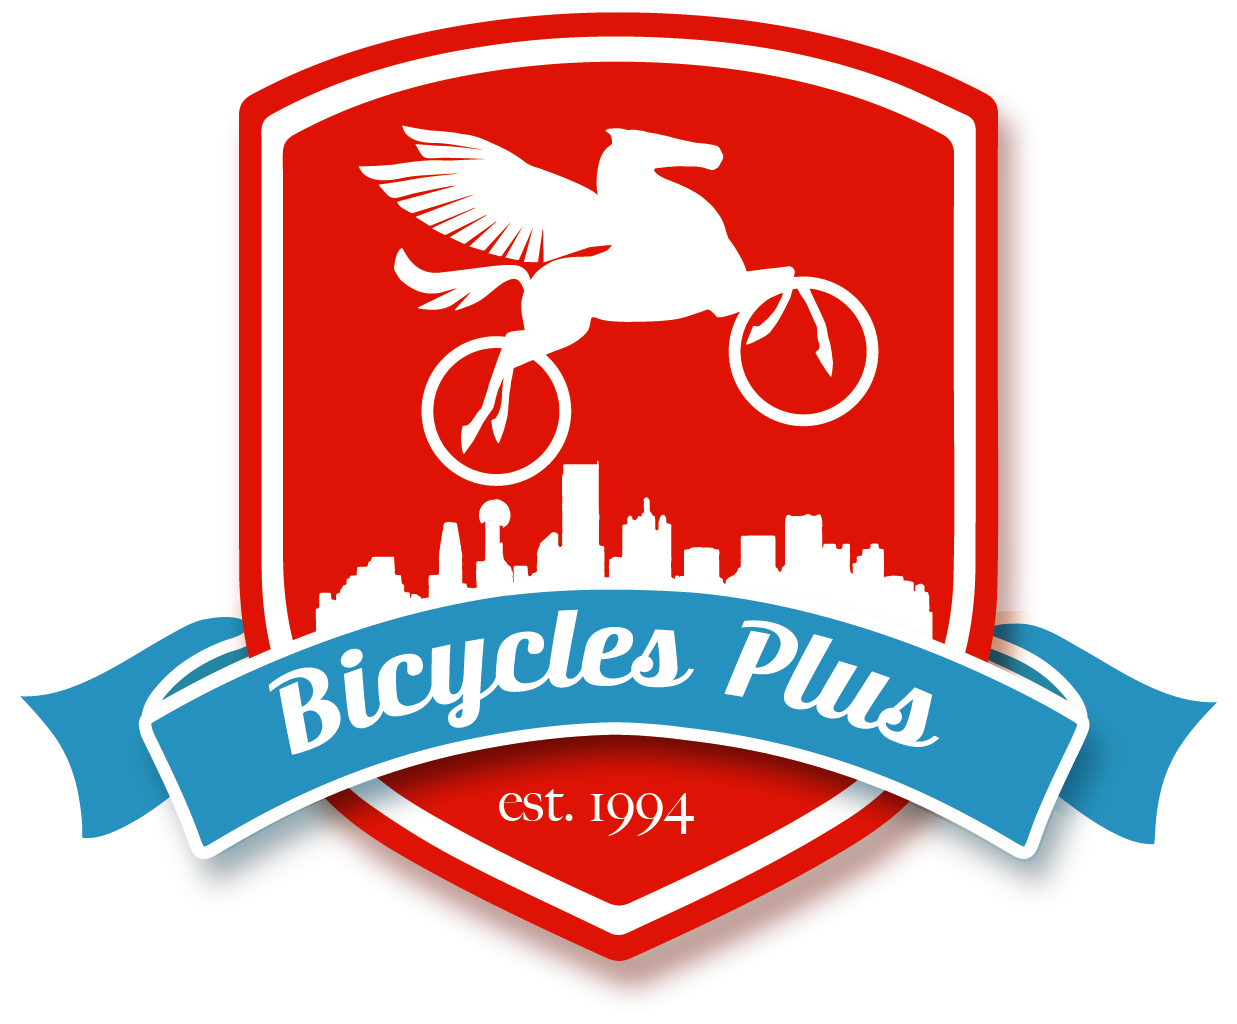 Bicycles Plus Inc.